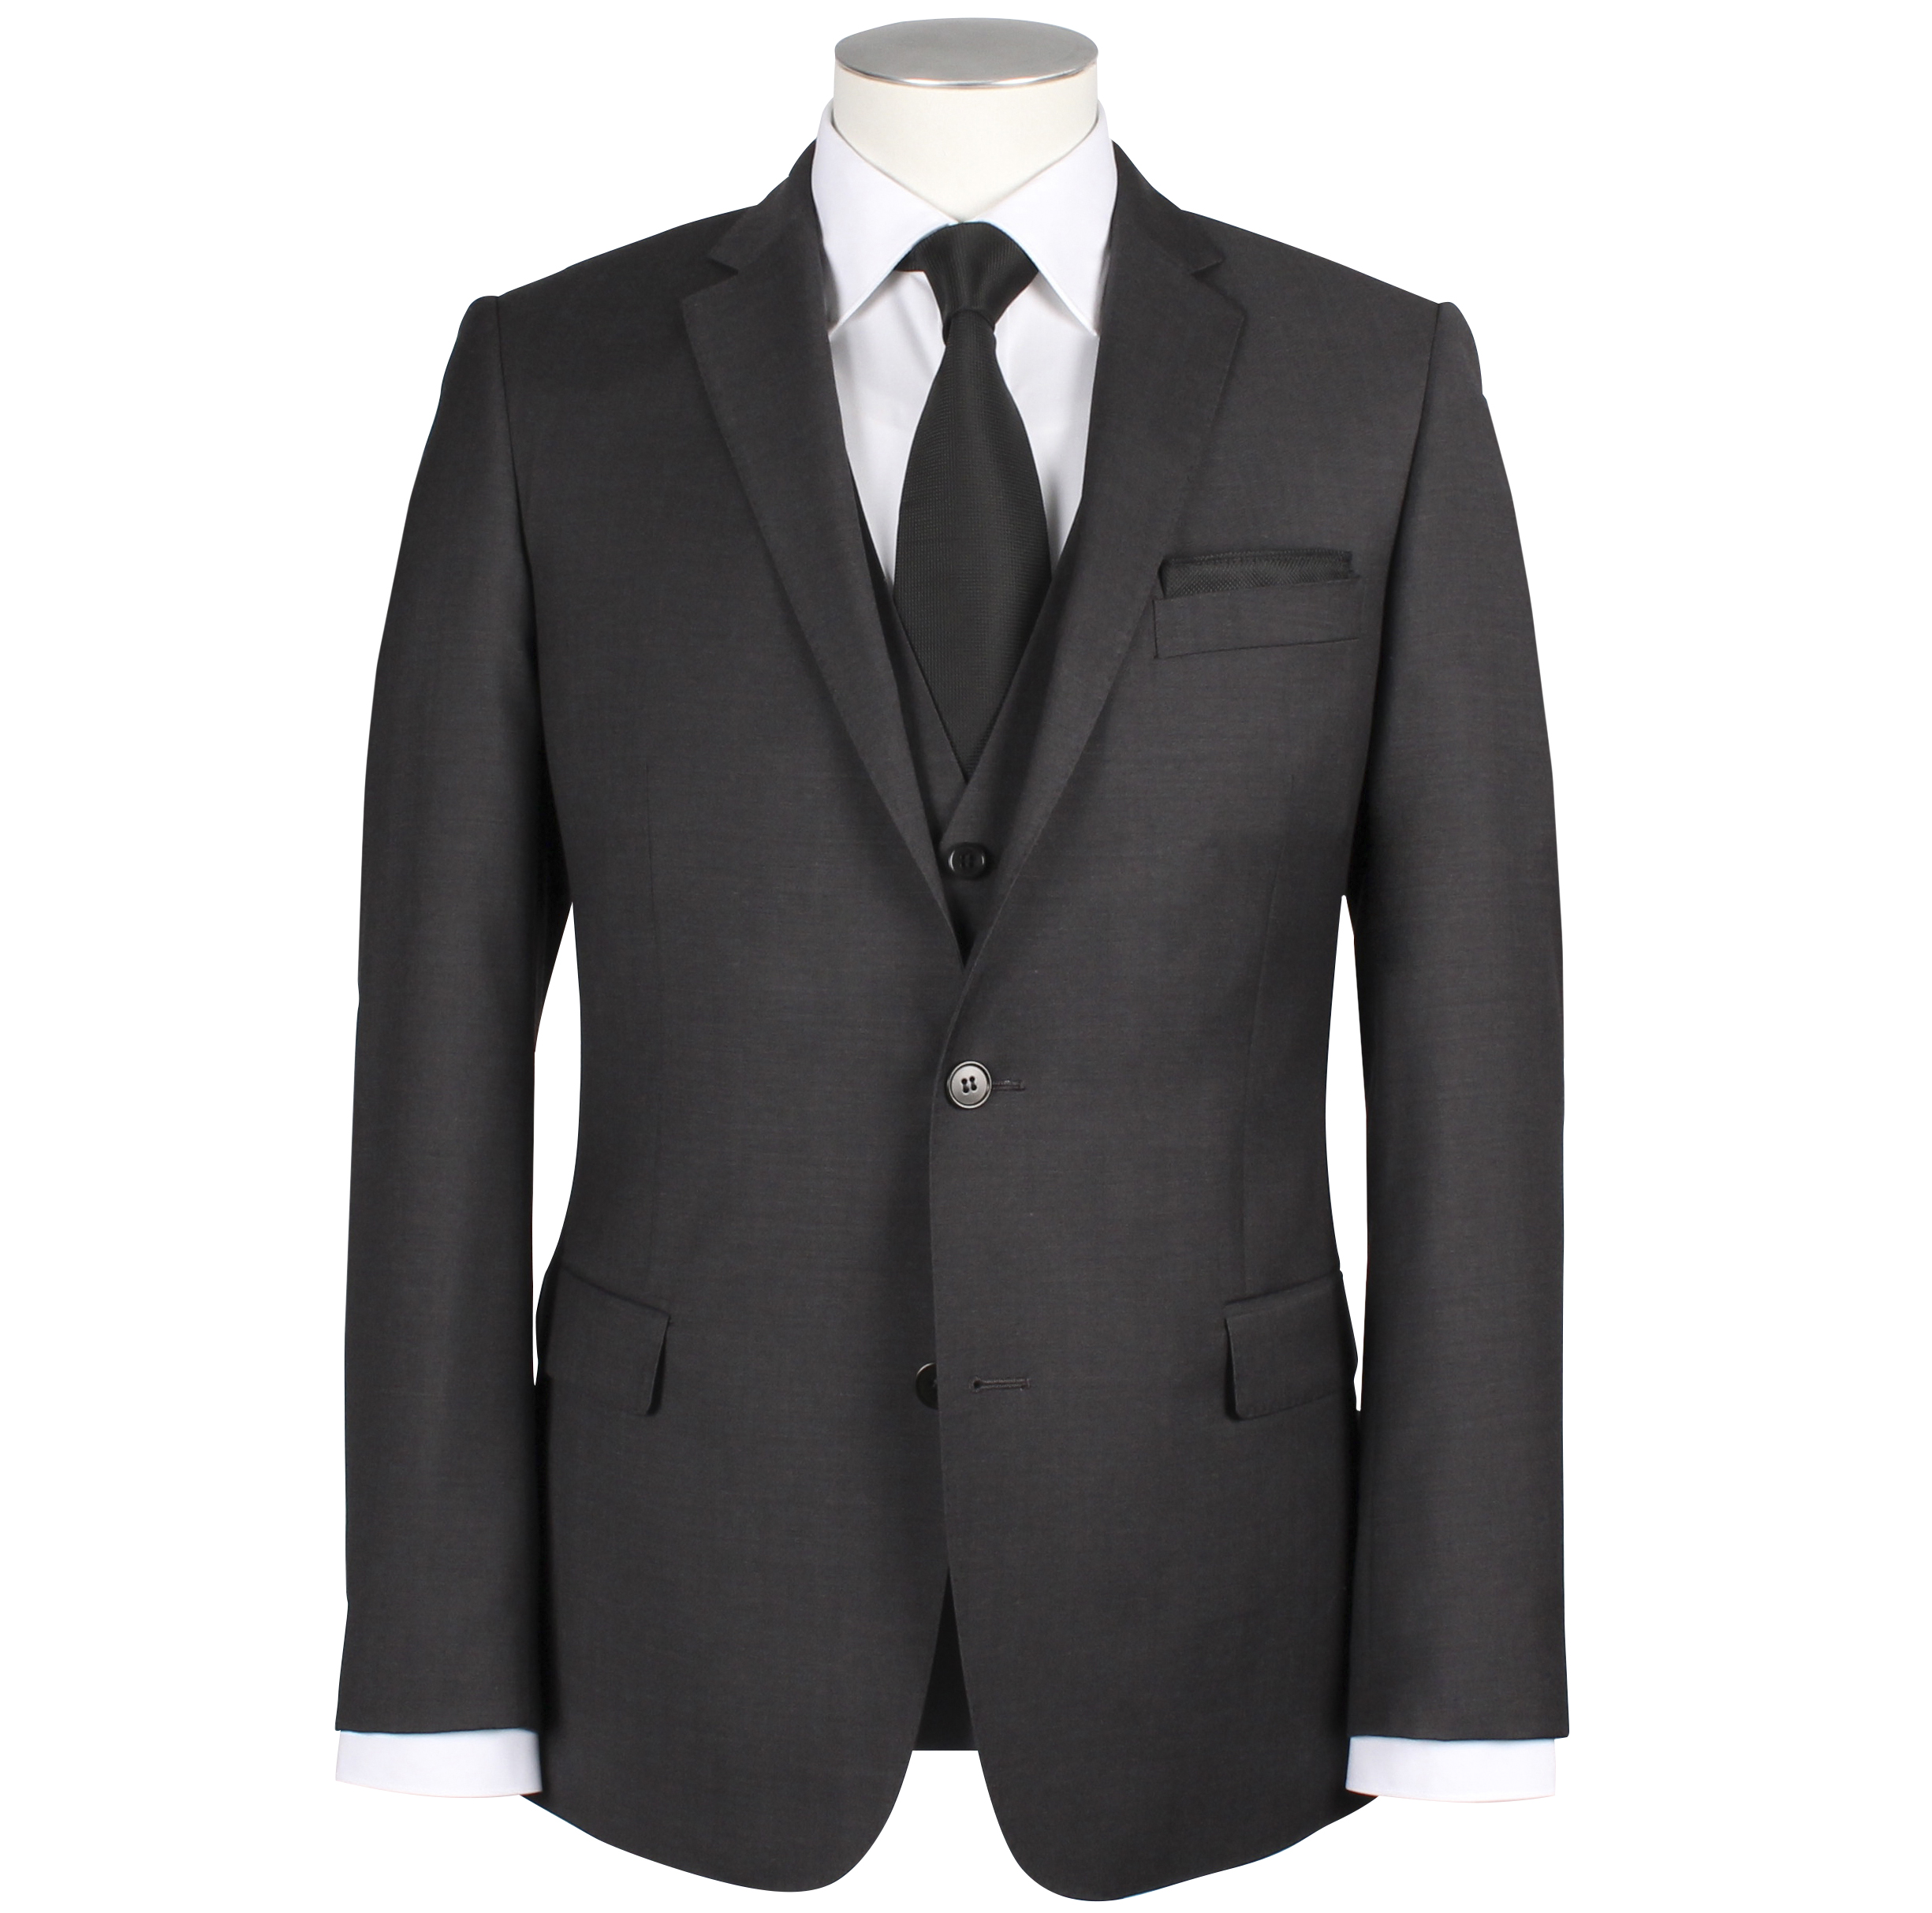 stuart-suits-hire-jackets